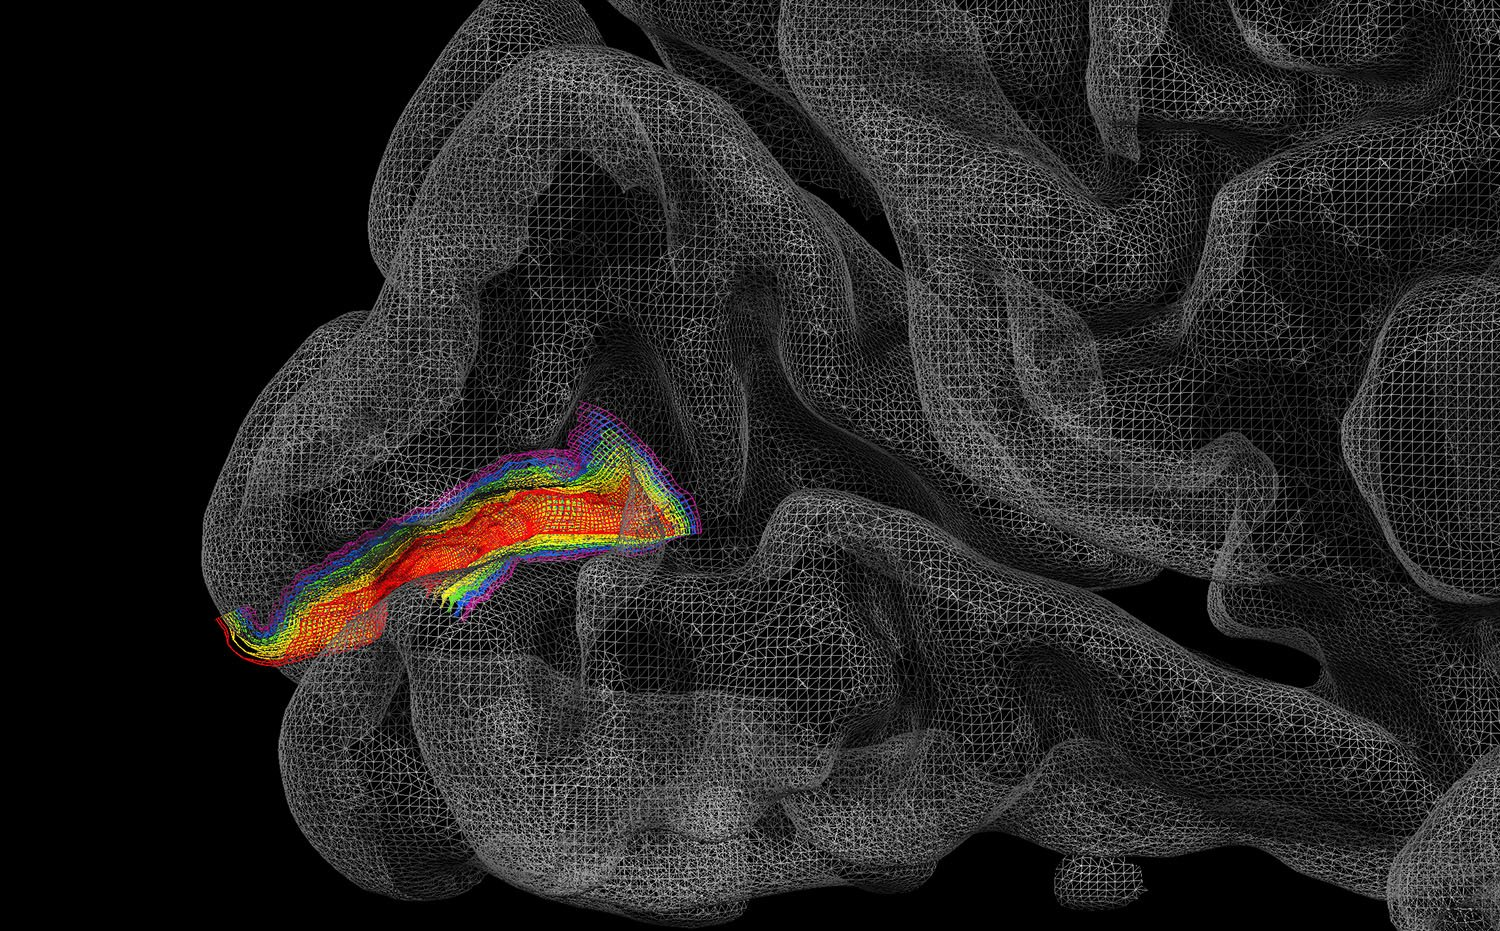 State-of-the-art functional brain imaging techniques allowed Prof. Muckli to investigate the human brain at sub-millimetre resolutions.